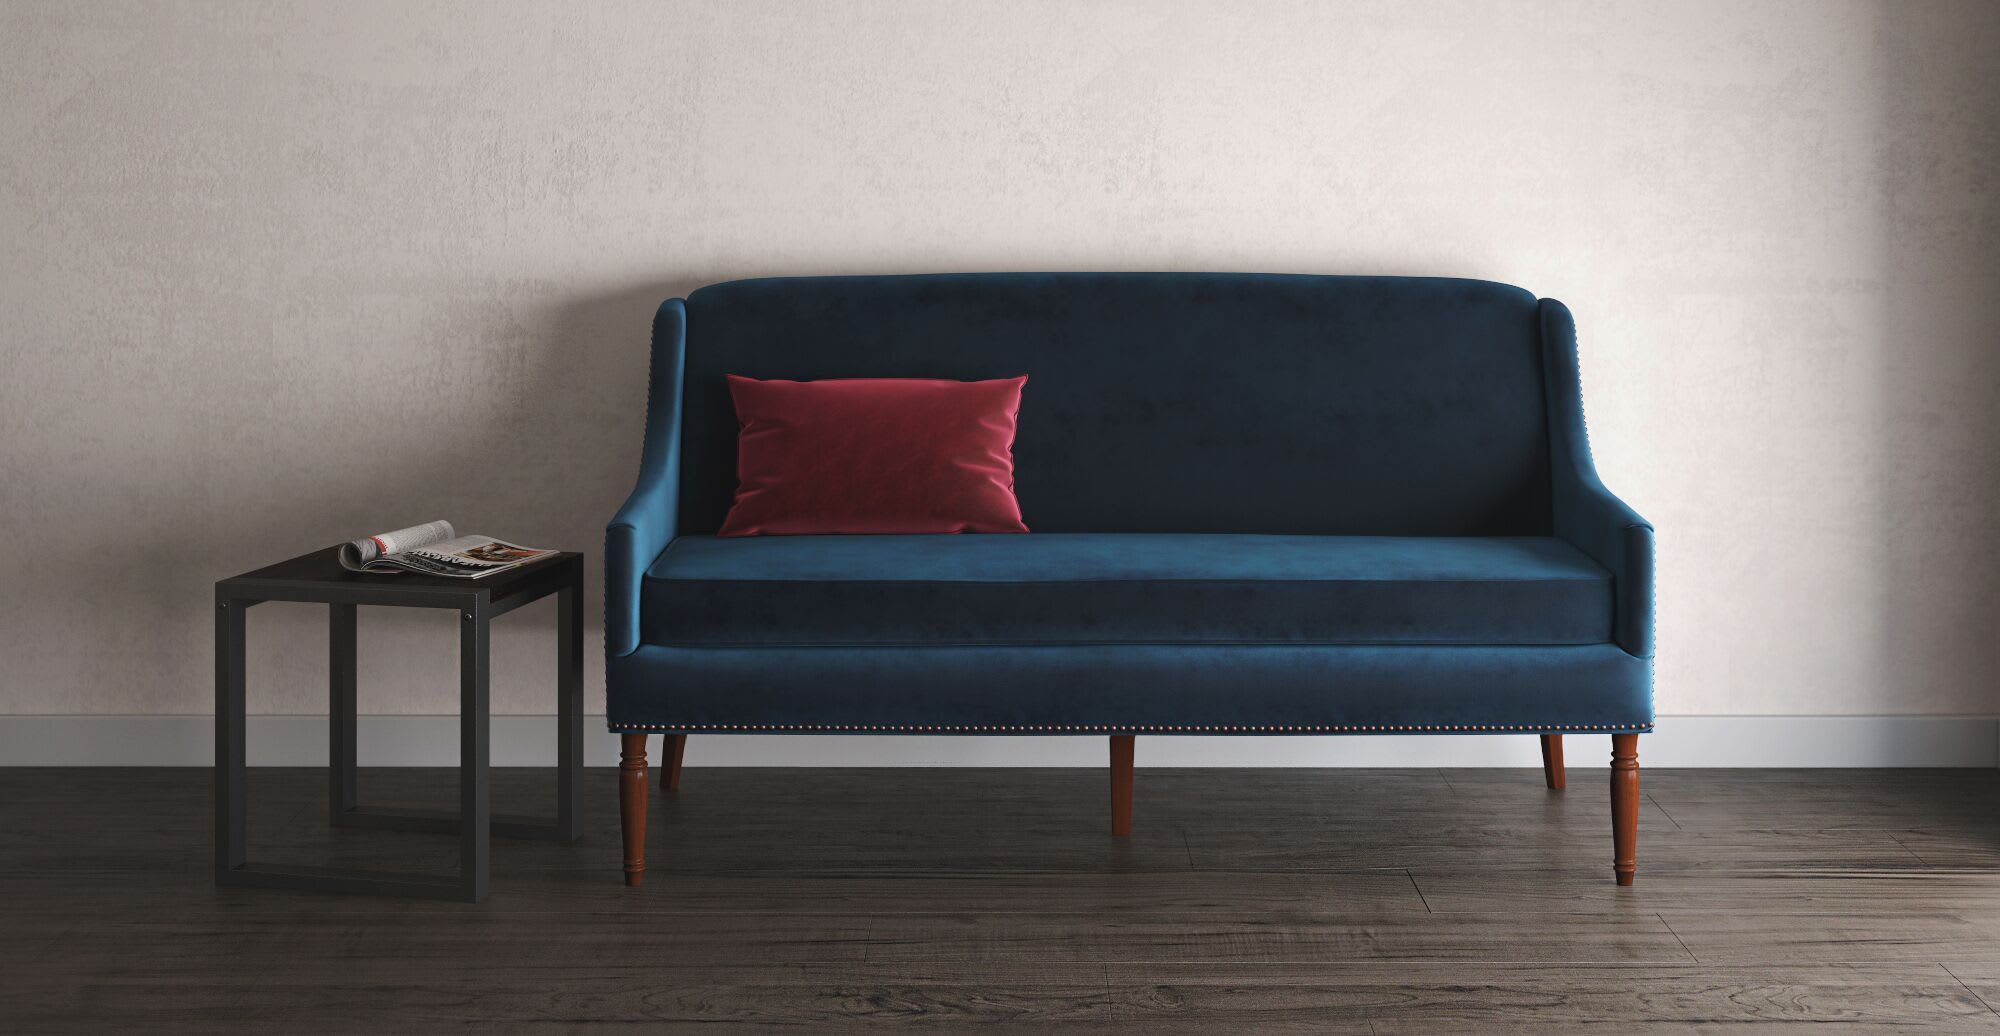 A red throw pillow on a blue sofa